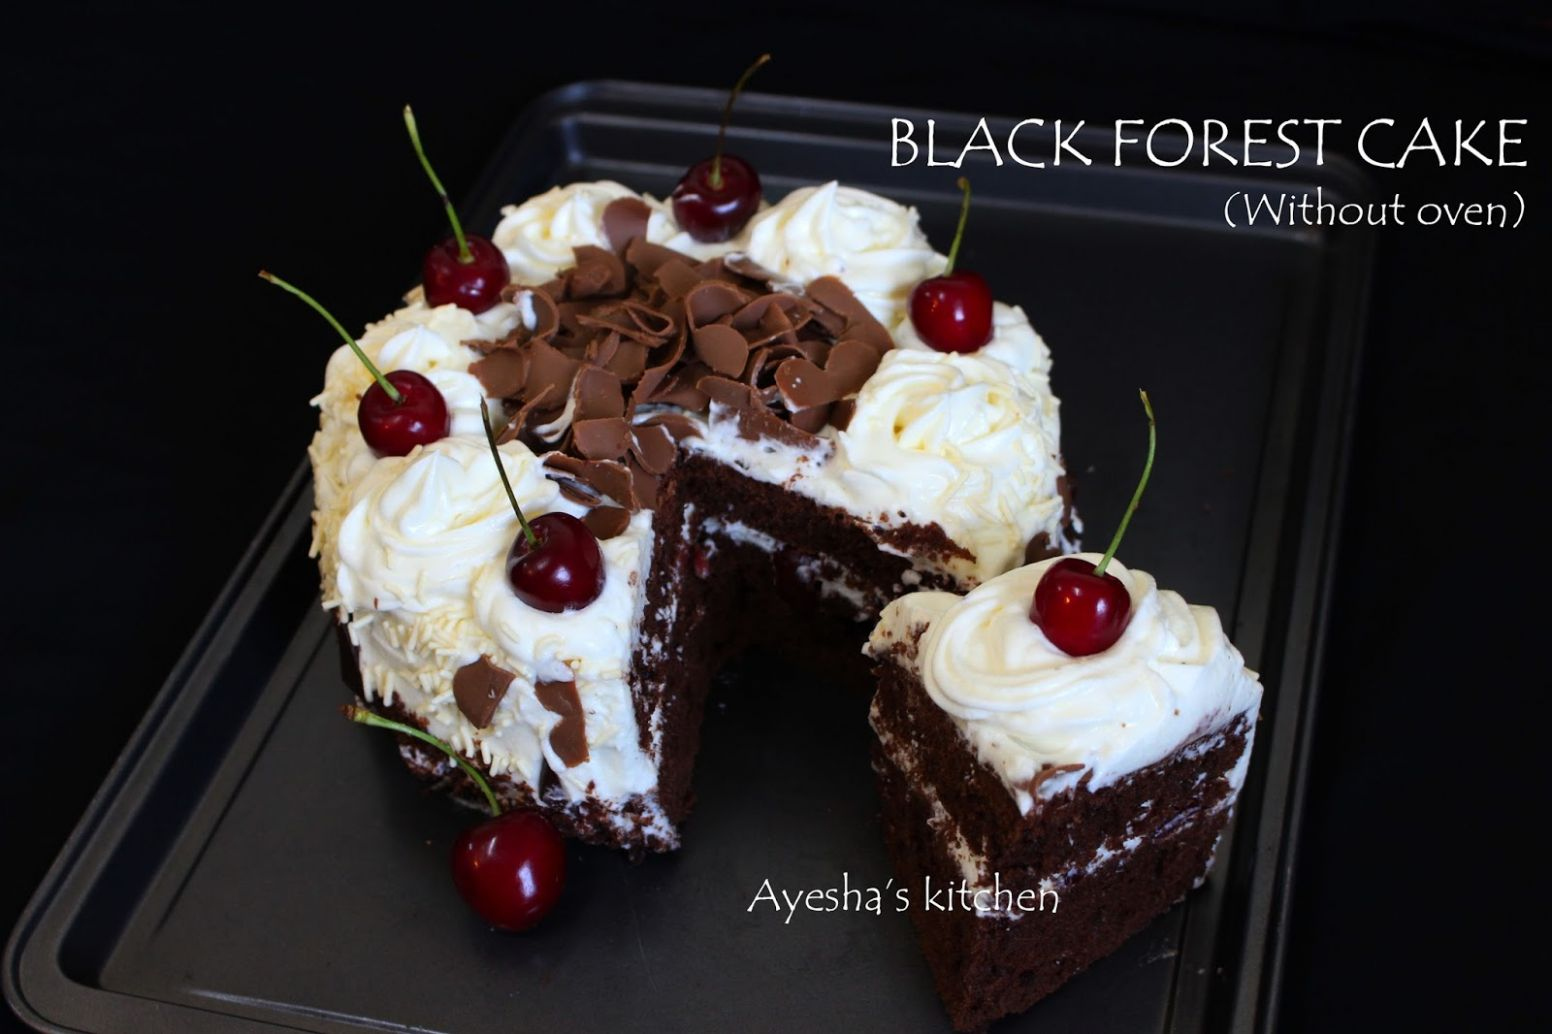 How to make black forest cake | Black forest cake recipe without oven - Cake Recipes Malayalam